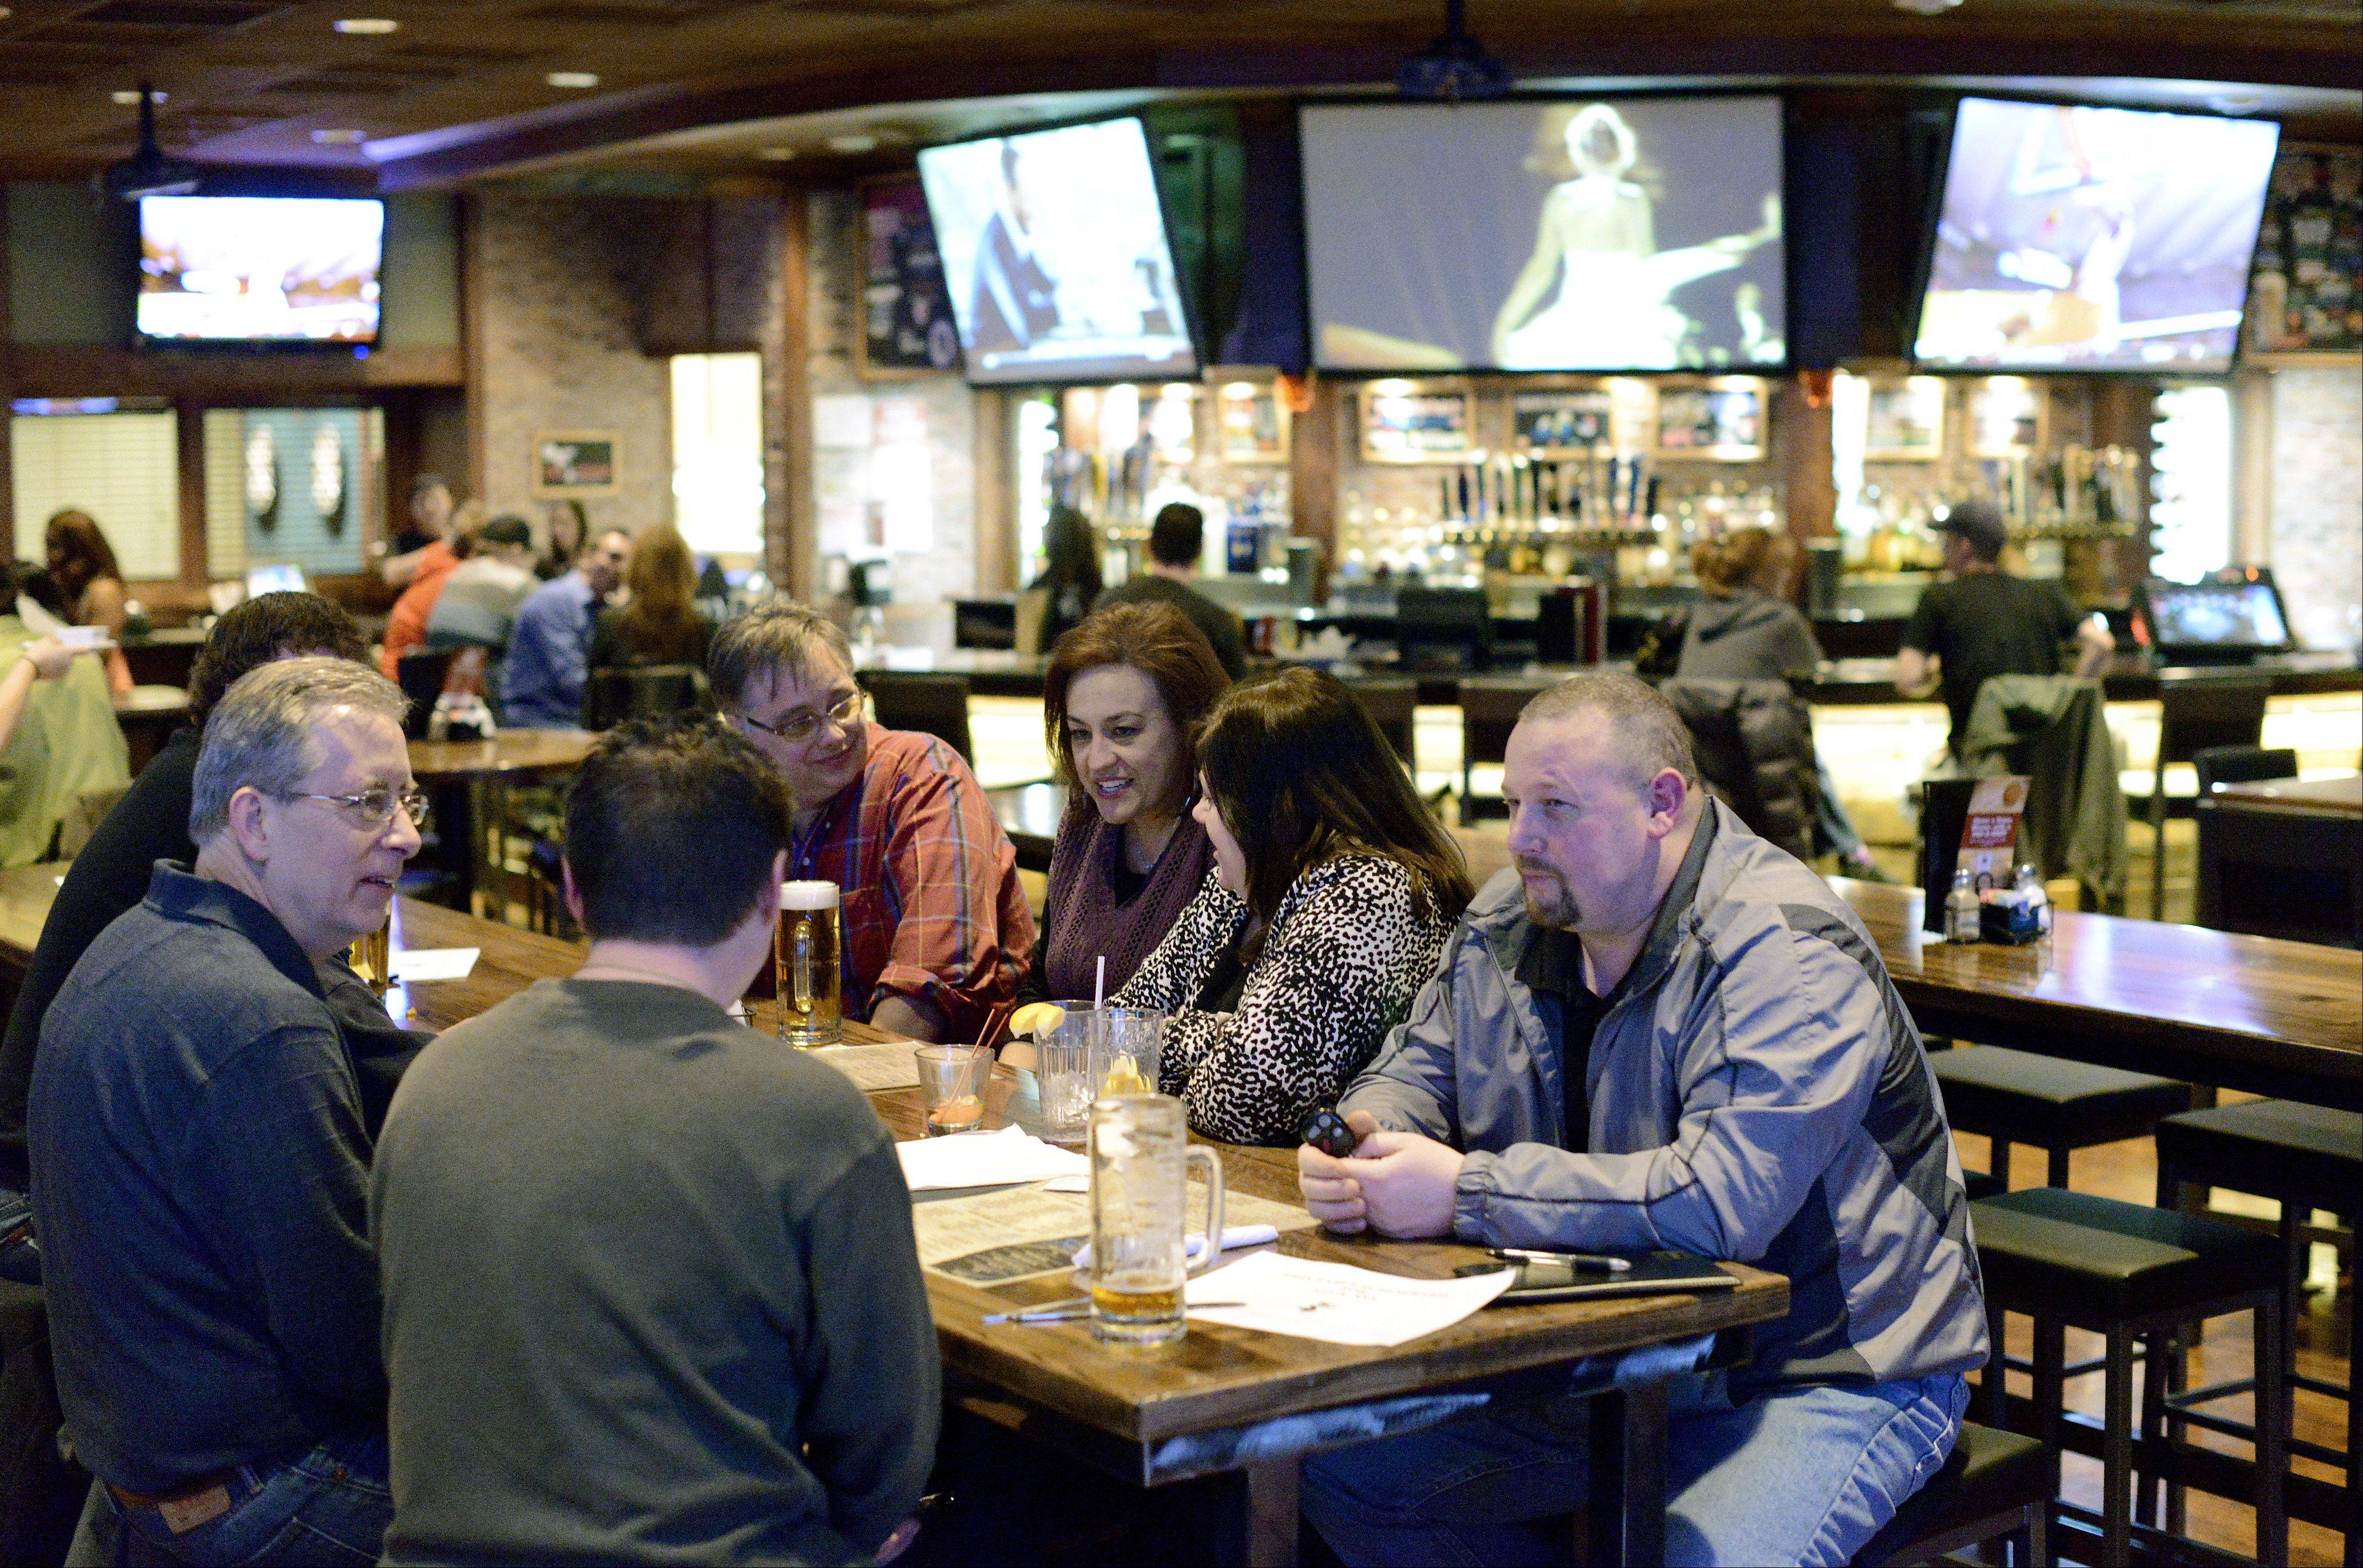 Patrons enjoy drinks at long tables at the Fox & Hound Sports Tavern in Arlington Heights.